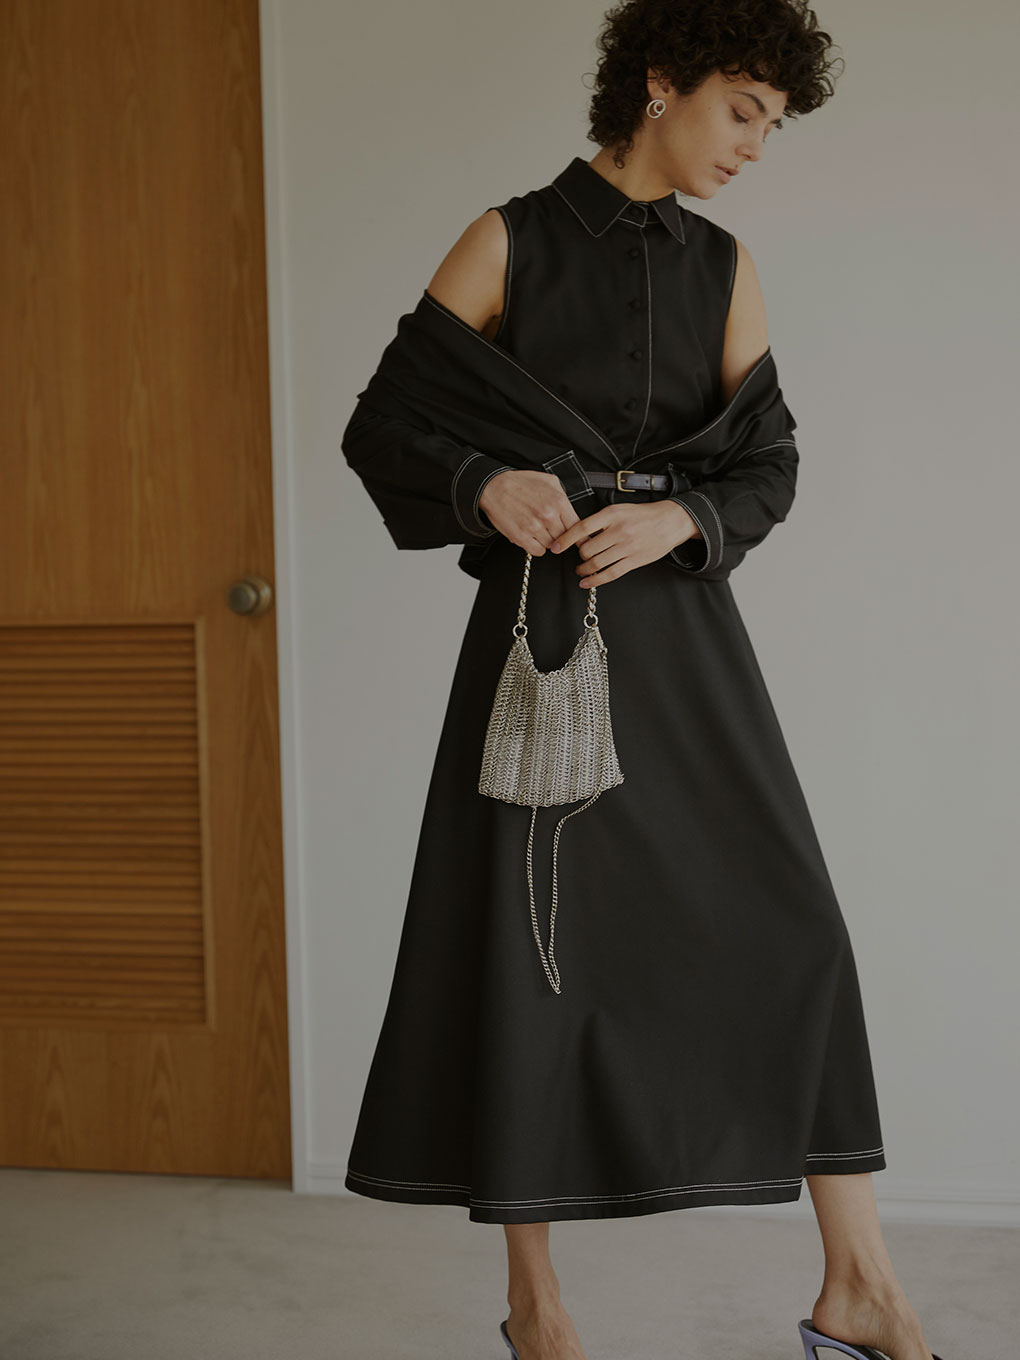 GENTLEWOMAN OVERLAP DRESS